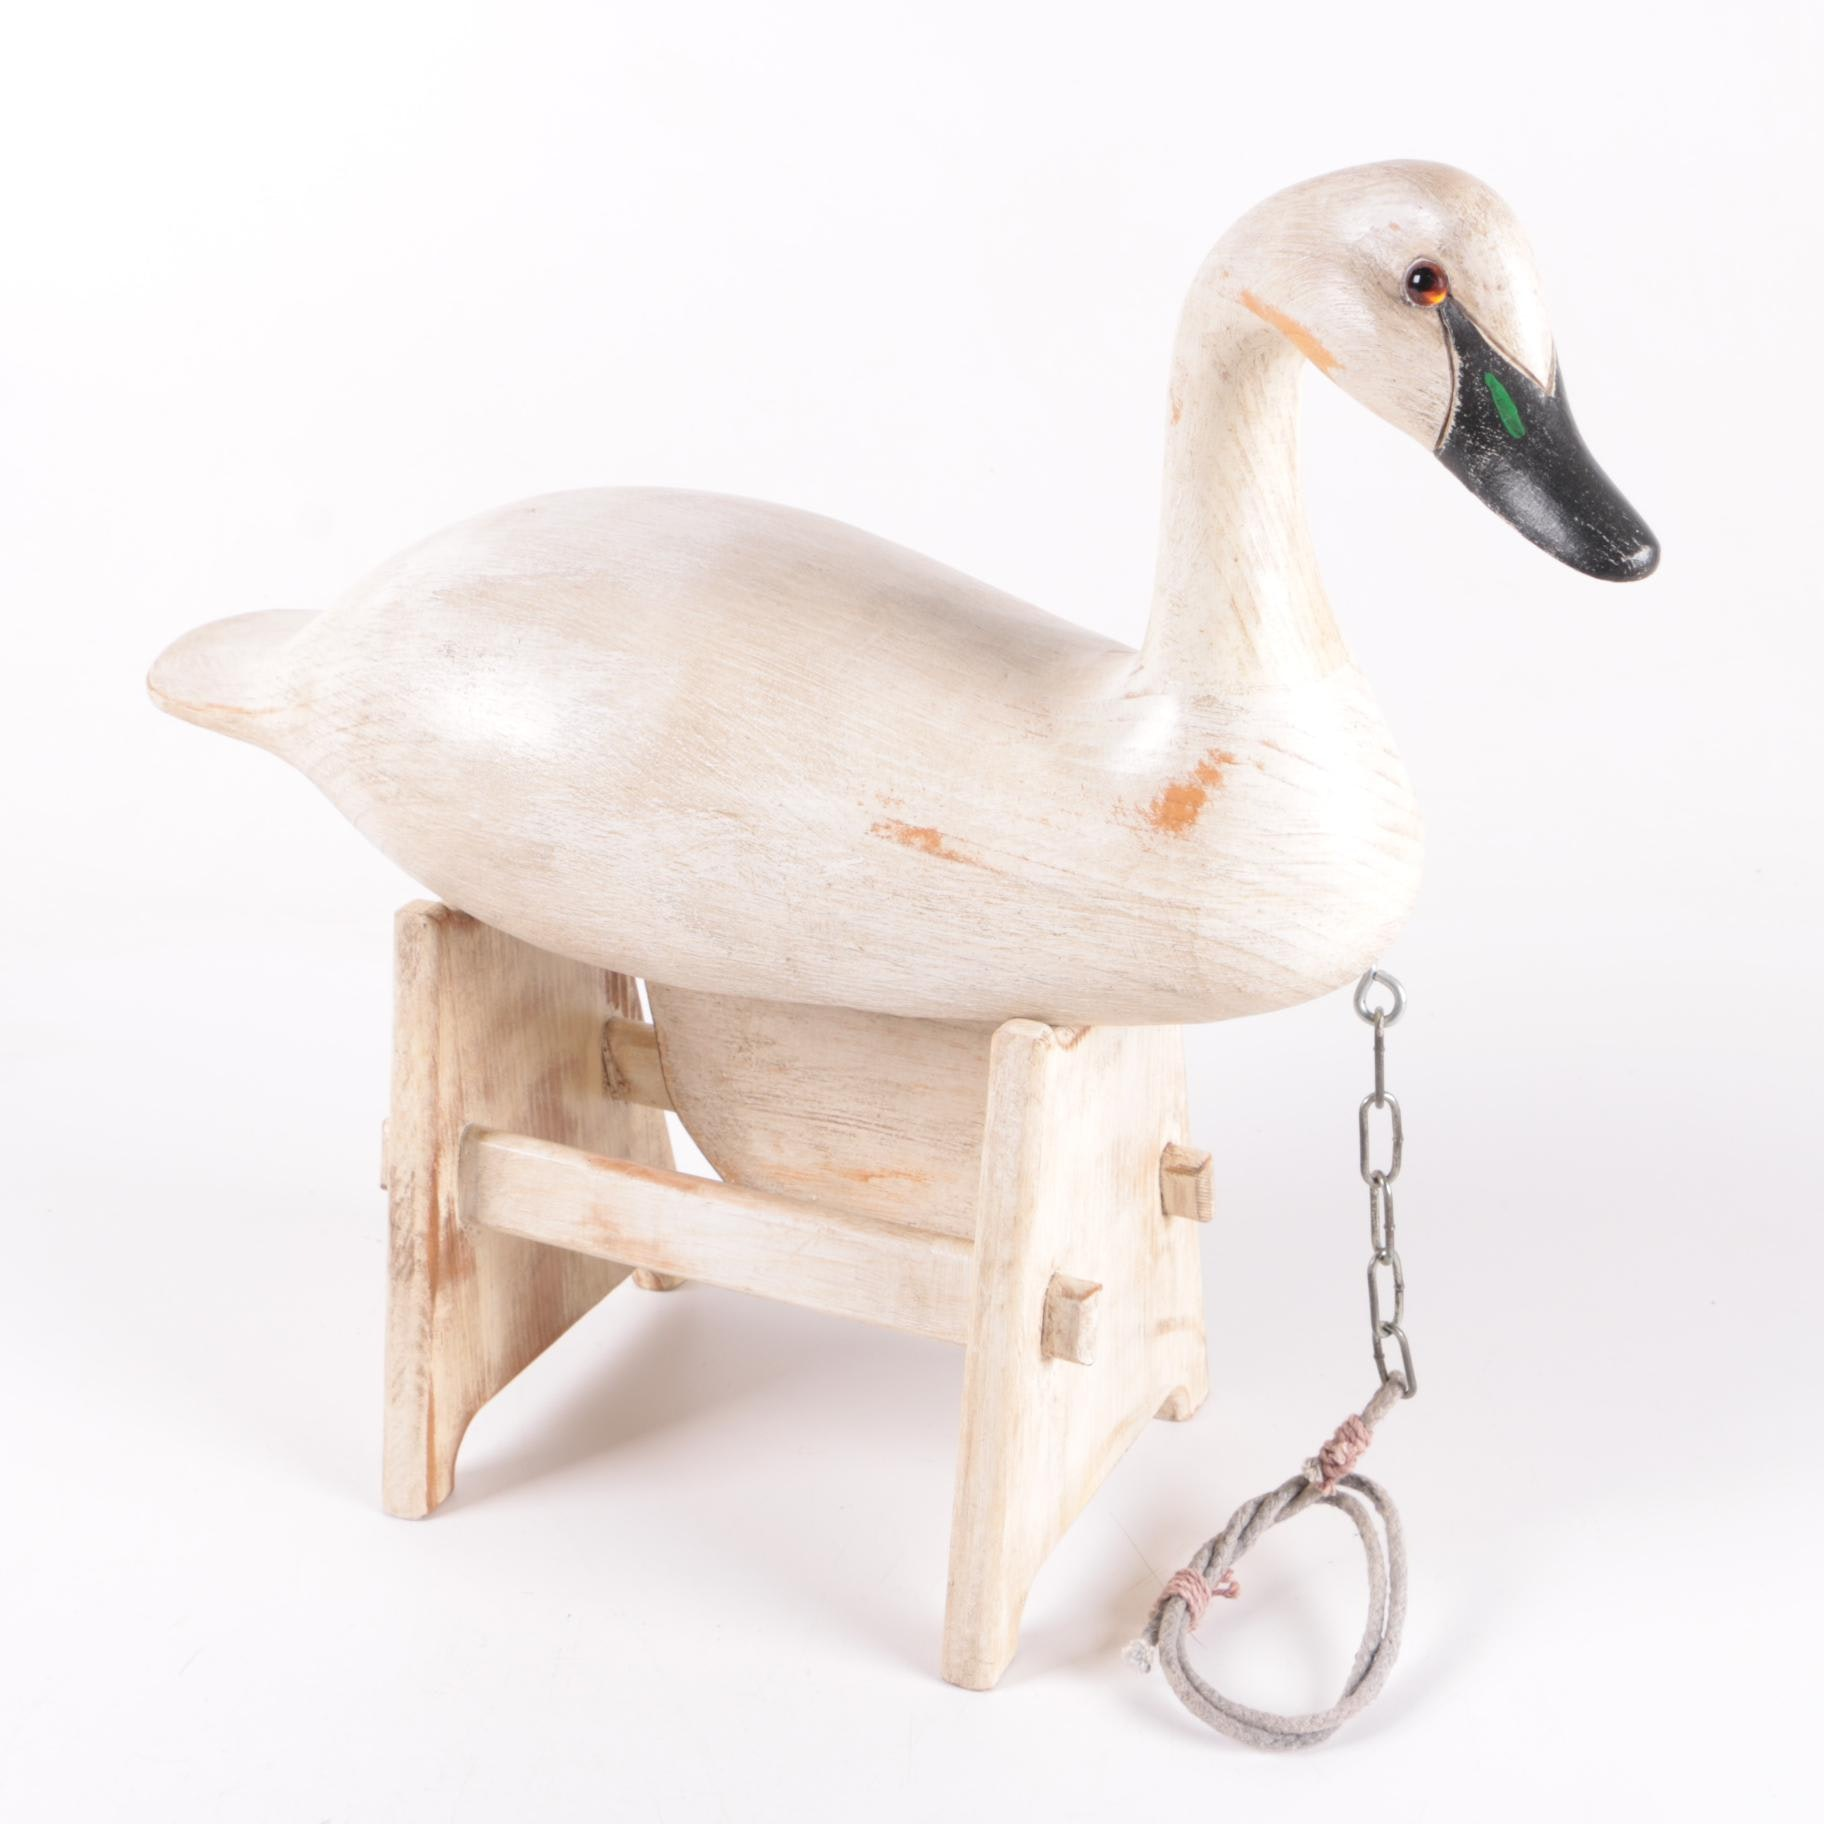 1990 Signed Wooden Swan Decoy with Stand